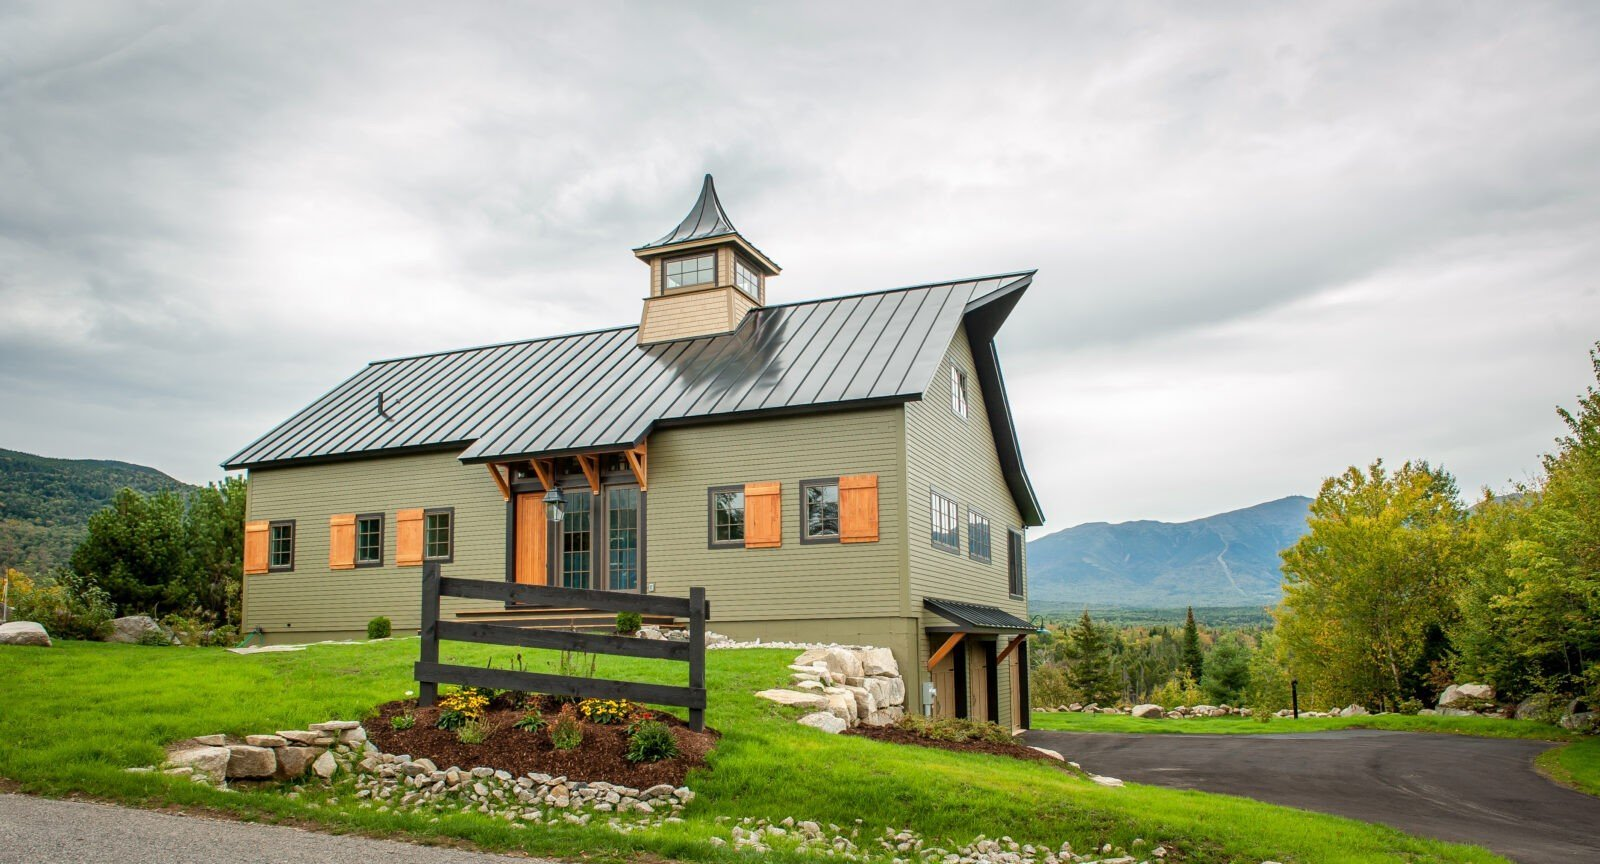 Top notch barn home plans from the ybh design team for Barn home plans